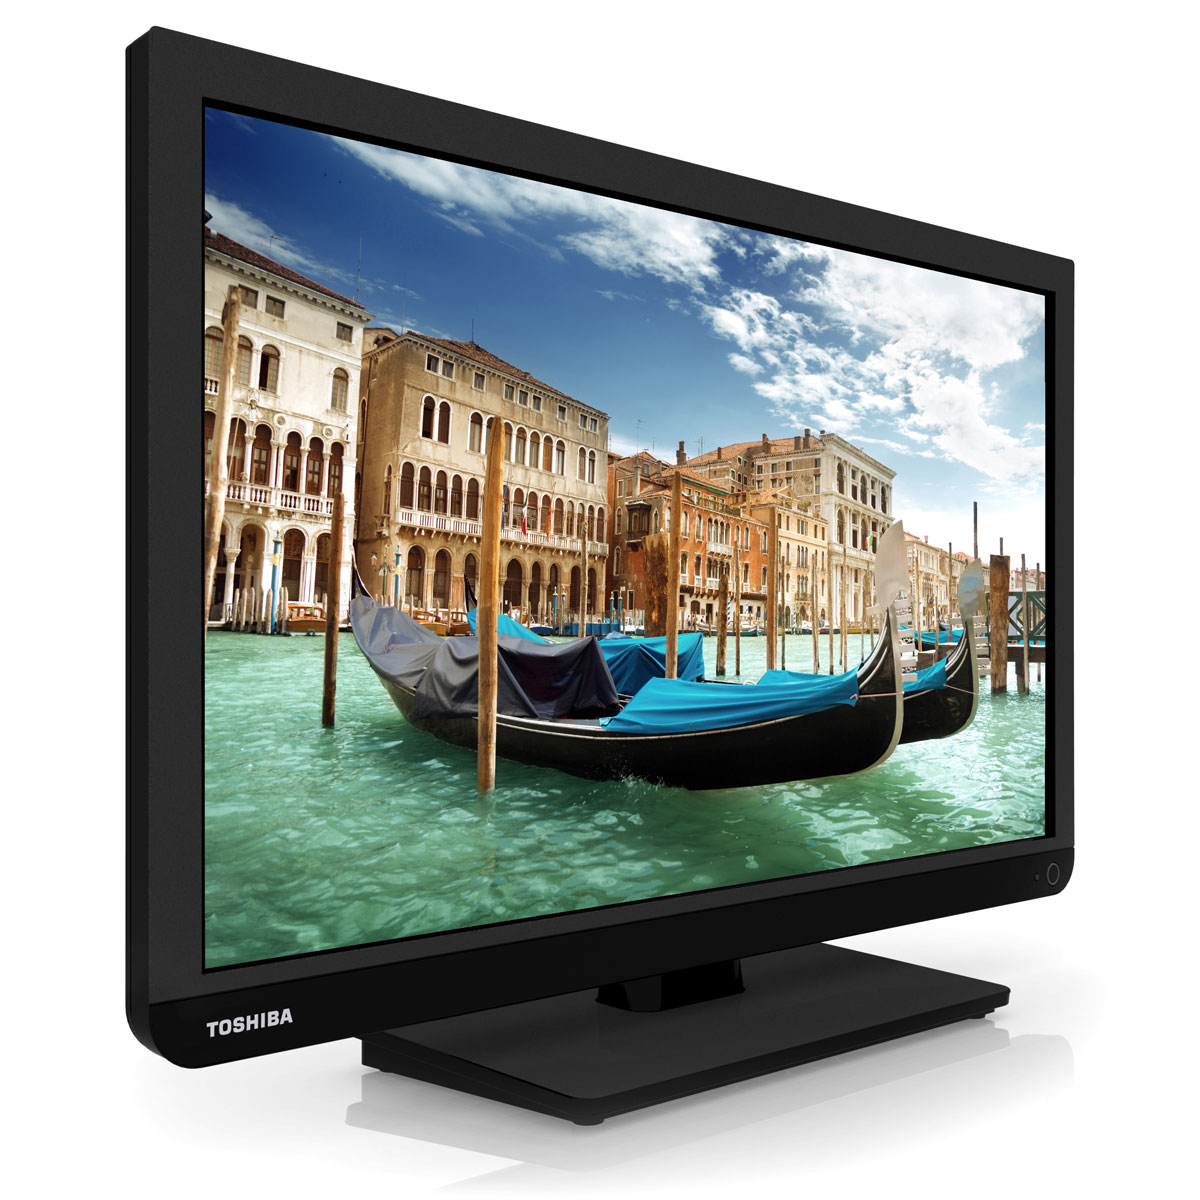 toshiba 22l1333g tv toshiba sur. Black Bedroom Furniture Sets. Home Design Ideas